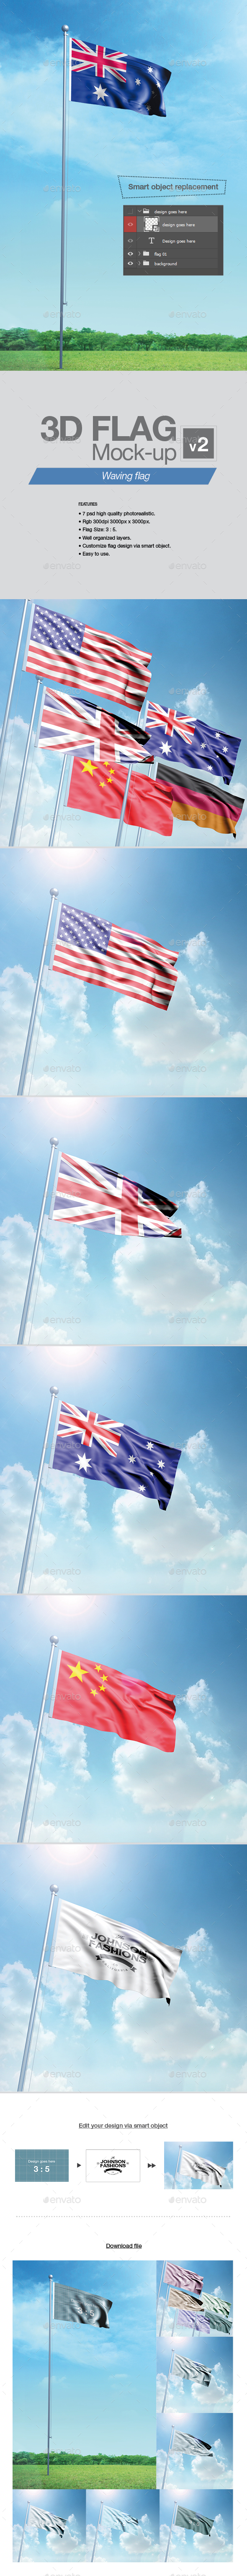 3D Flag Mockup v2 - Miscellaneous Product Mock-Ups